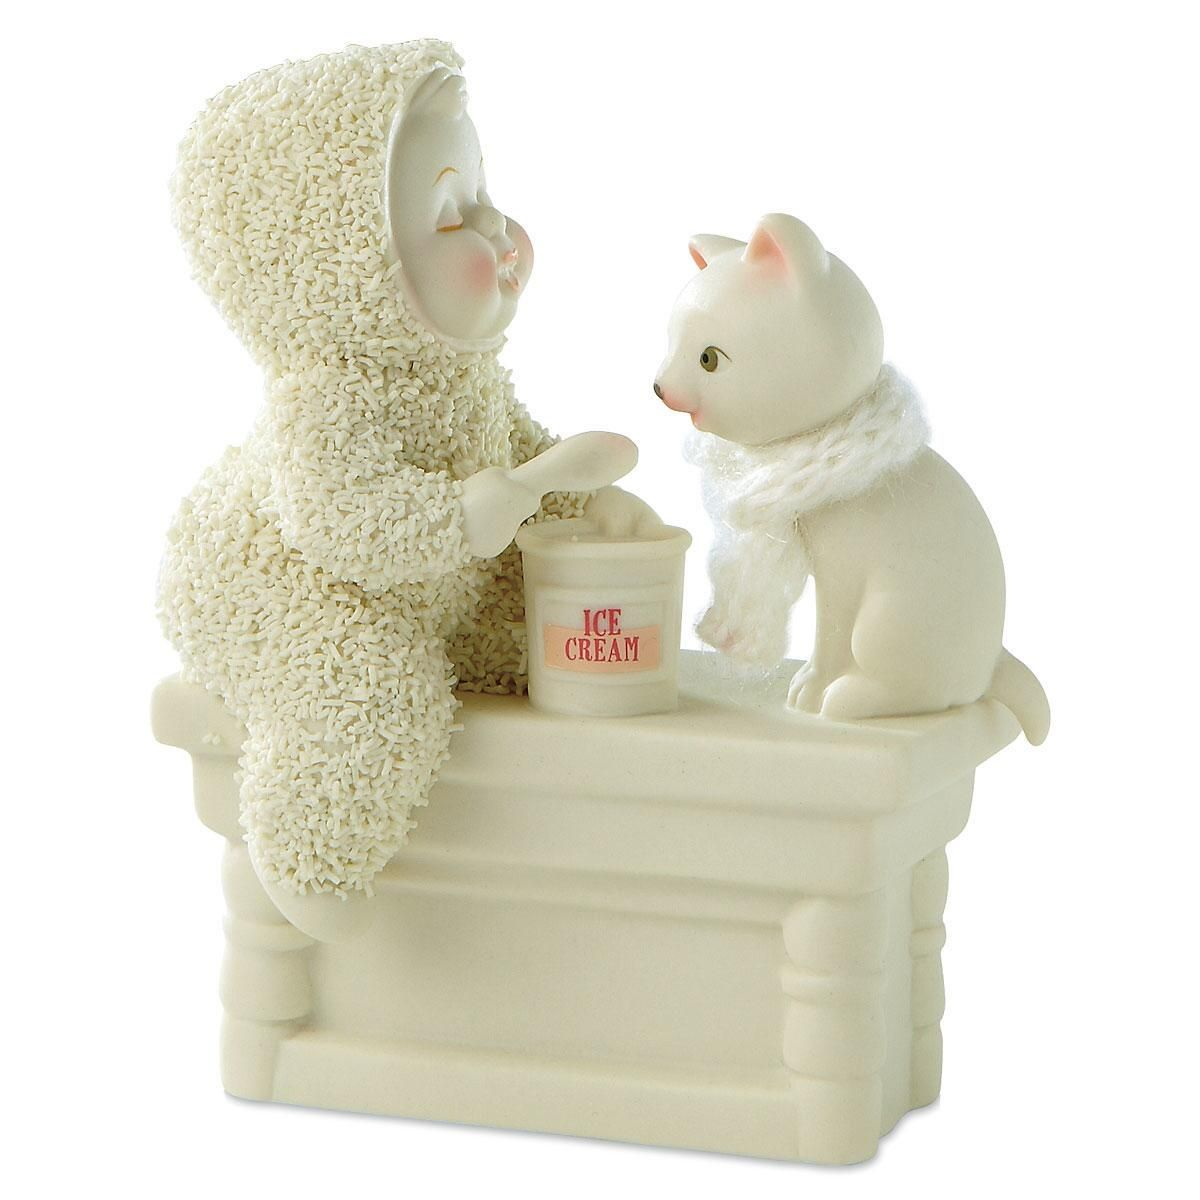 Snowbabies™ Scoop to Soothe the Soul Figurine